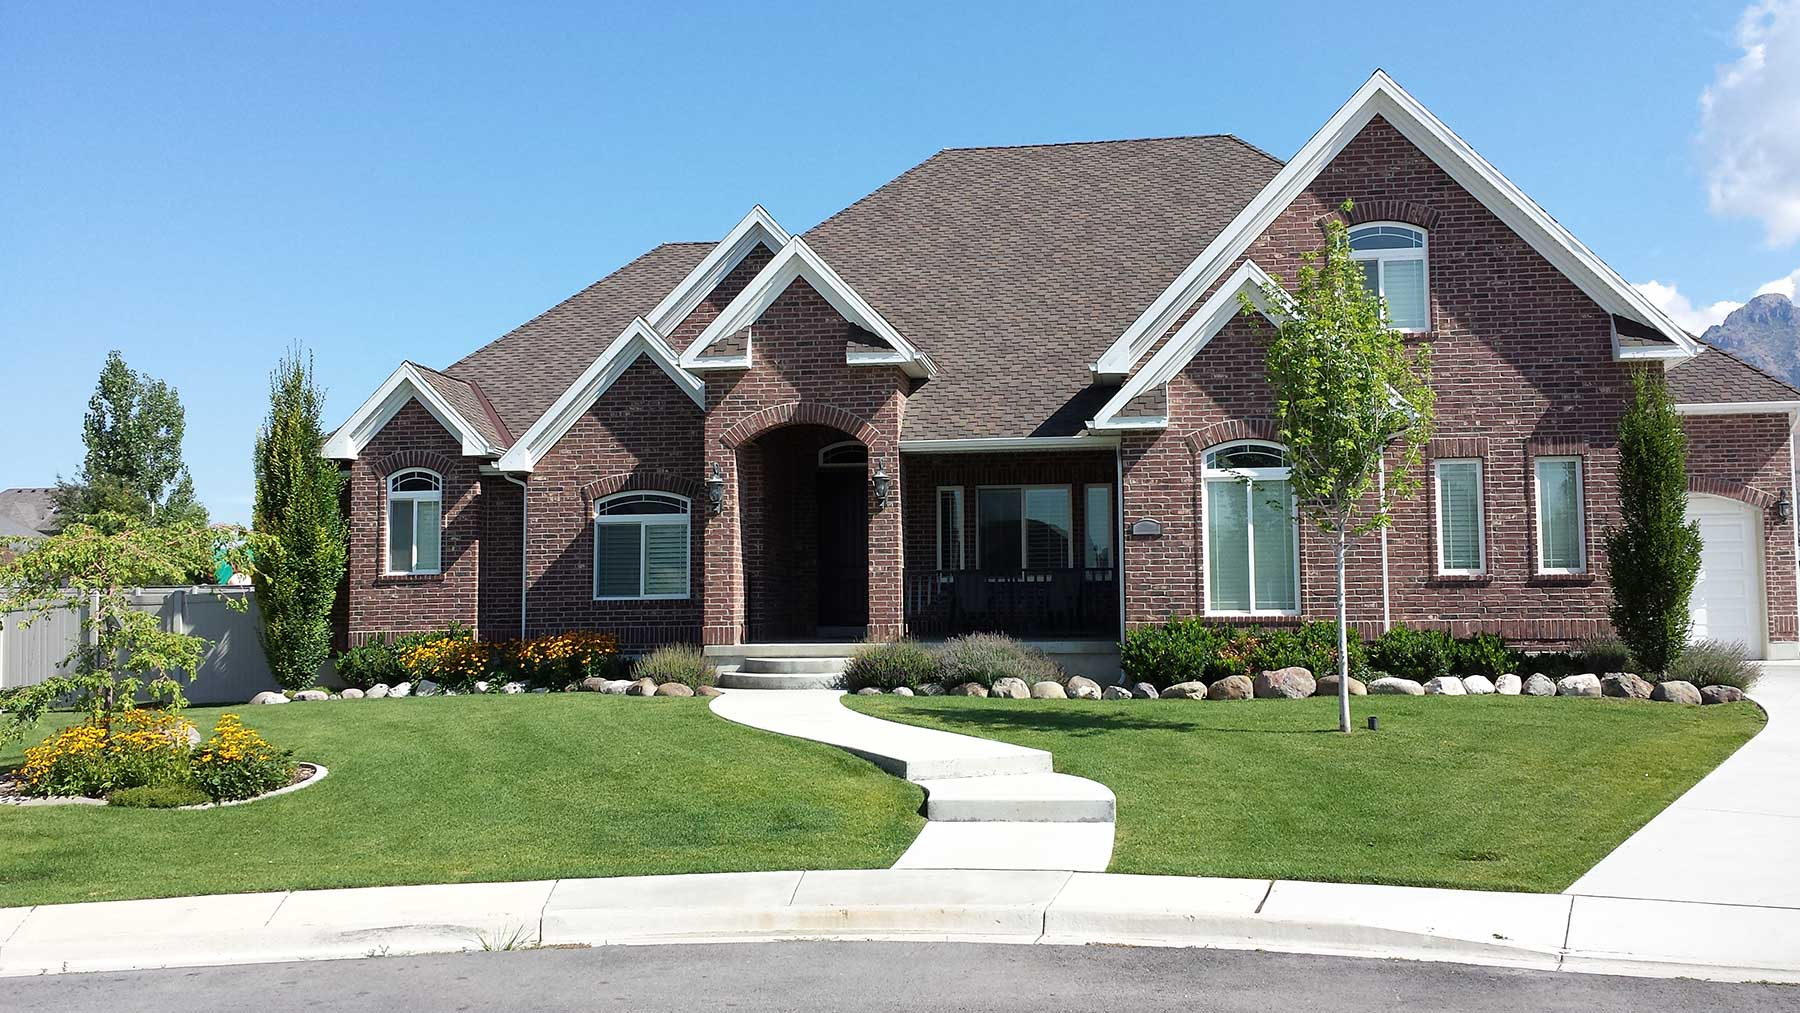 Custom homes knight west homes knight west homes for Exterior features of a house